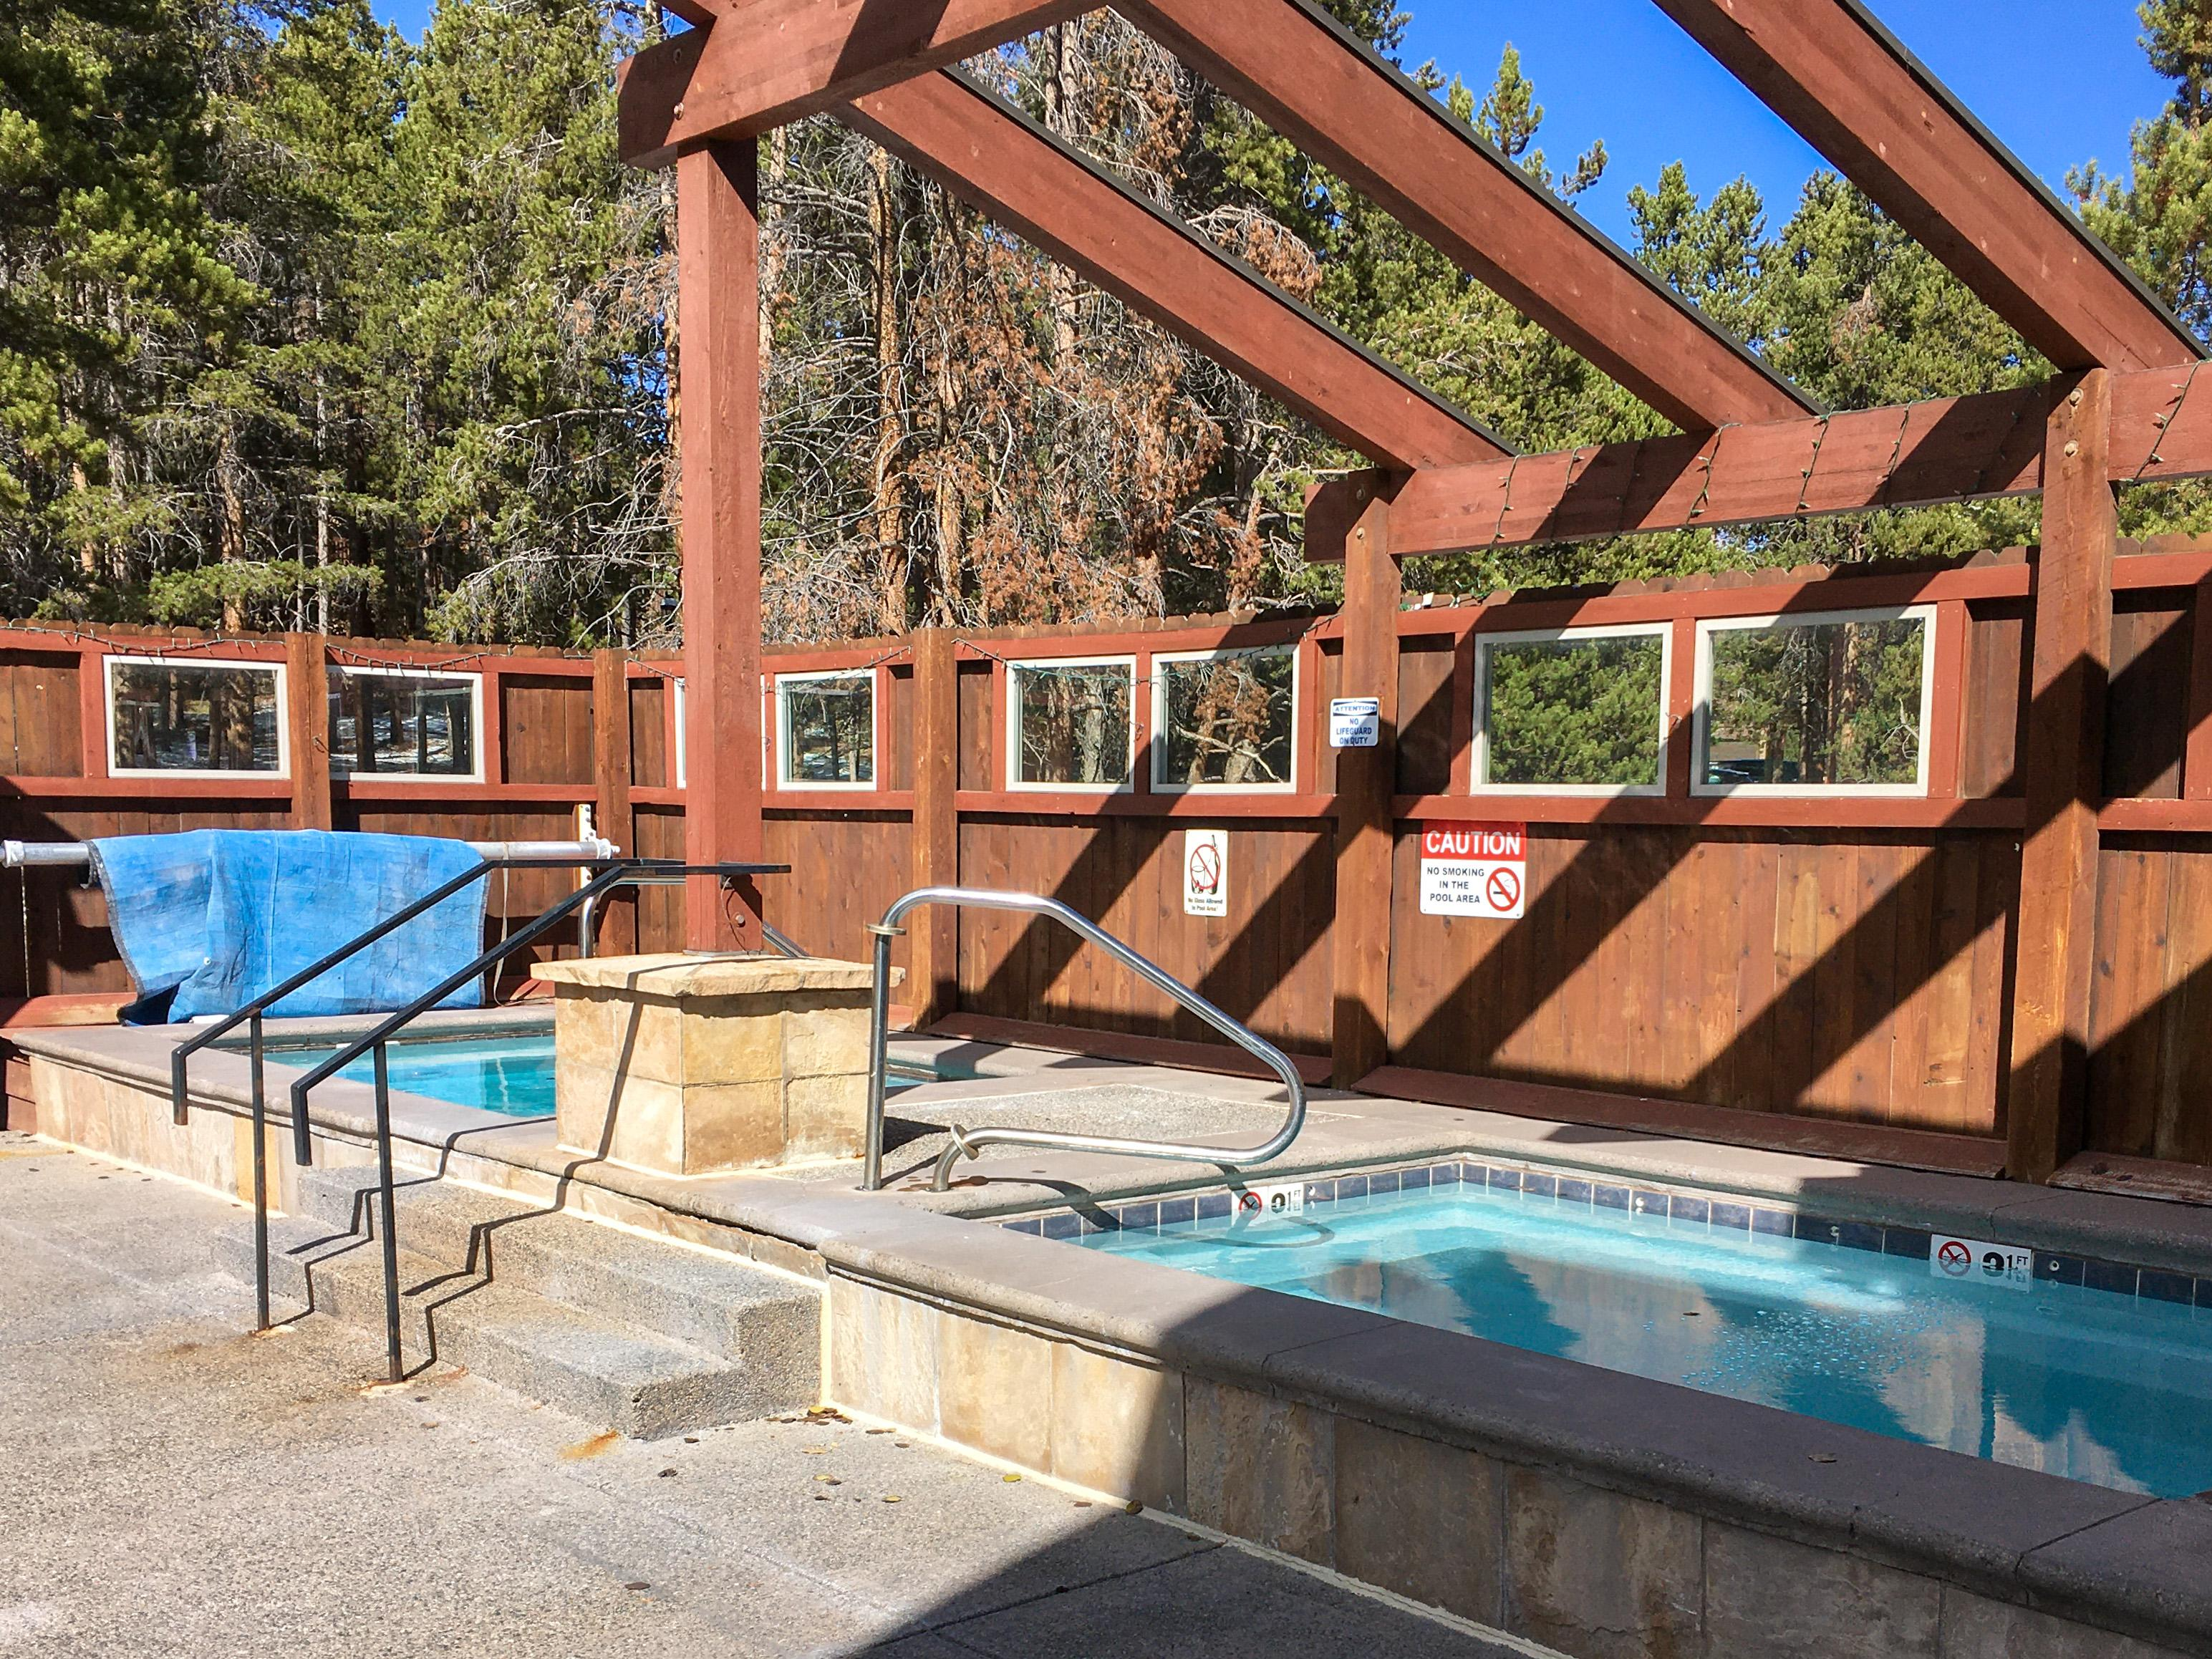 The pool area also features several hot tubs.